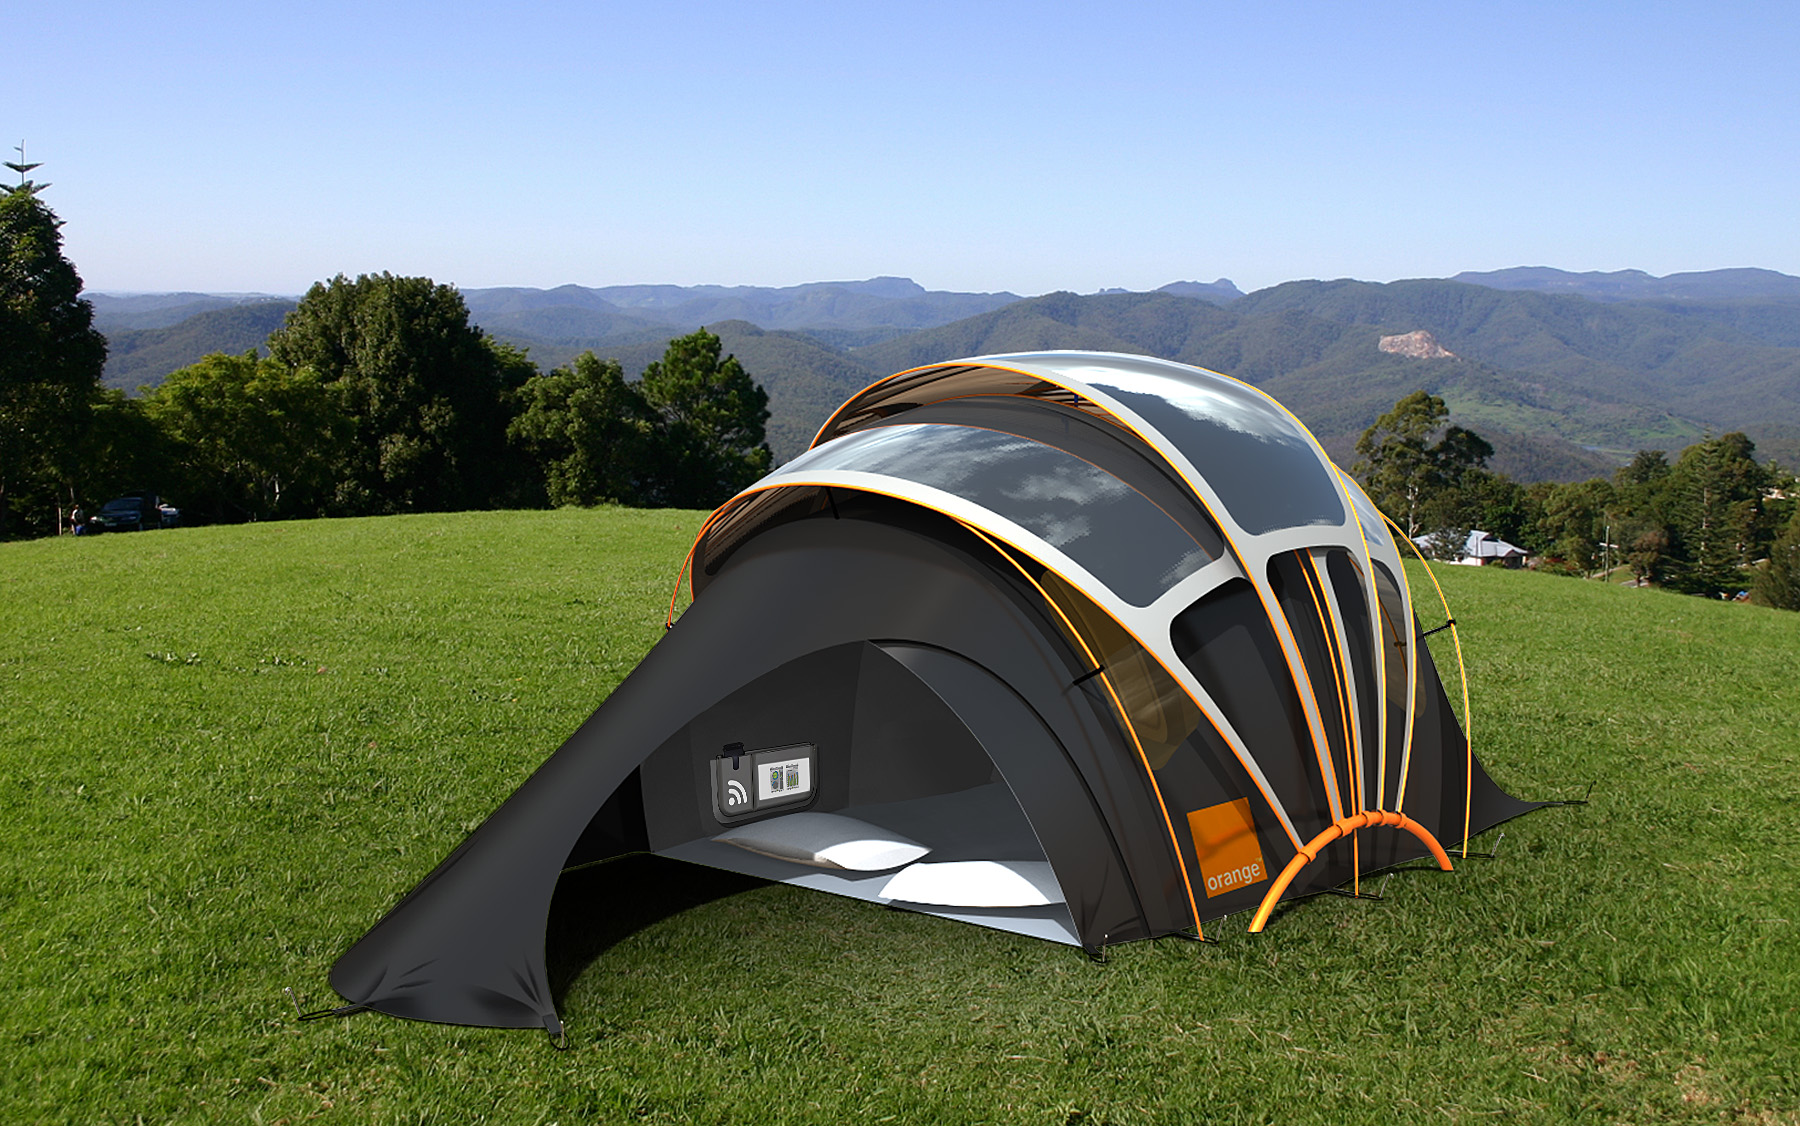 This 4-person solar tent is one of the ultimate green c&ing gadgets! Solar cells built into the tent gather energy during the day so you can charge ... & The Worldu0027s Most Amazing Tents - RoverPass